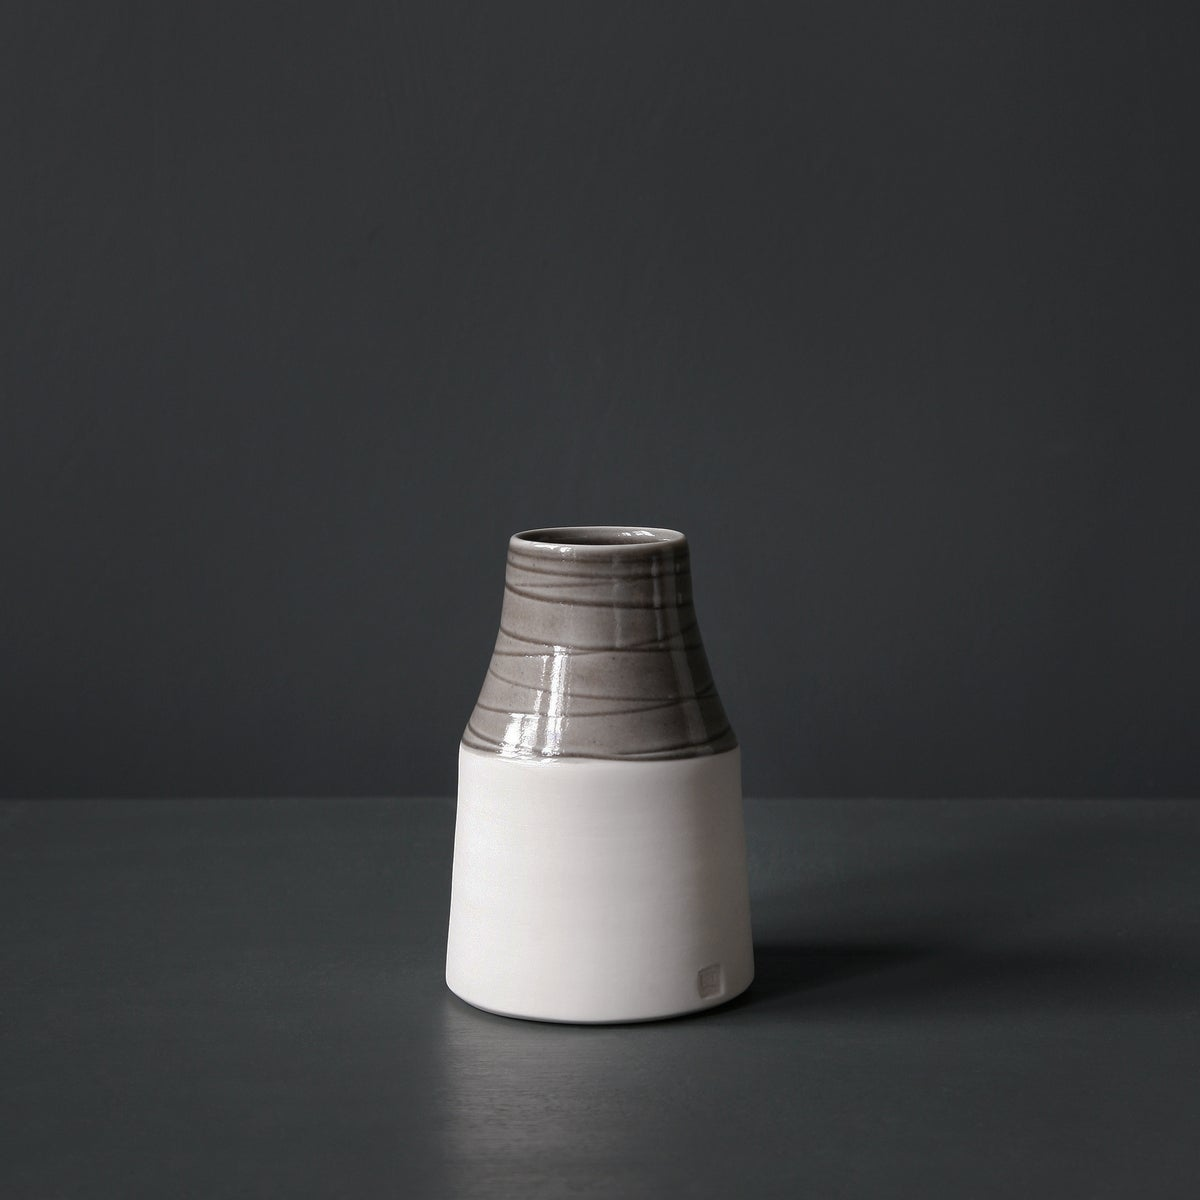 Image of Vase #3 by Louisa Taylor.